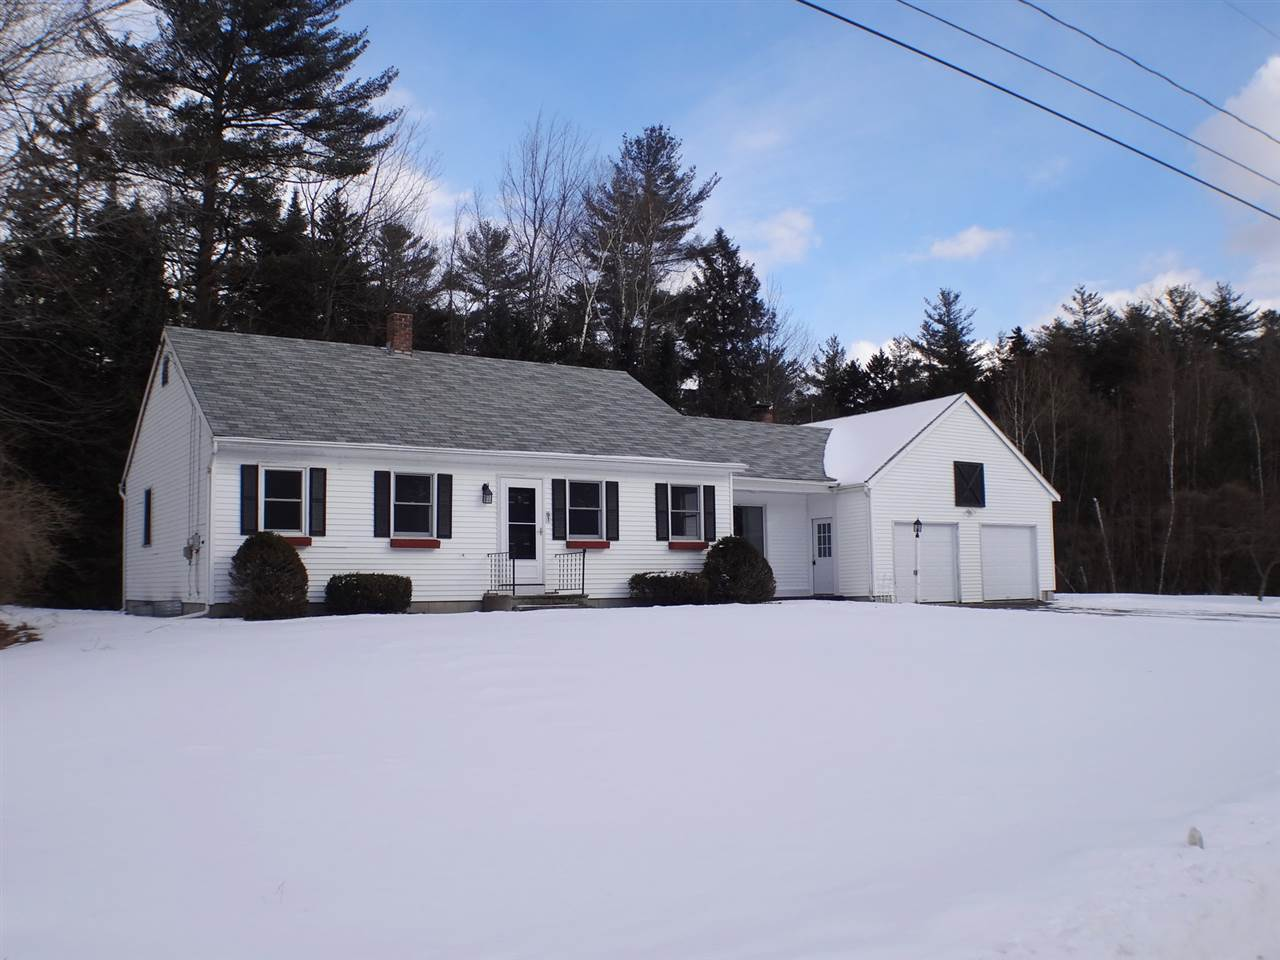 fort littleton catholic singles 119 brown rd , fort littleton, pa 17223-9683 is currently not for sale the 1,680 sq ft single-family home is a 4 bed, 20 bath property this home was built in 1900 and last sold on for.